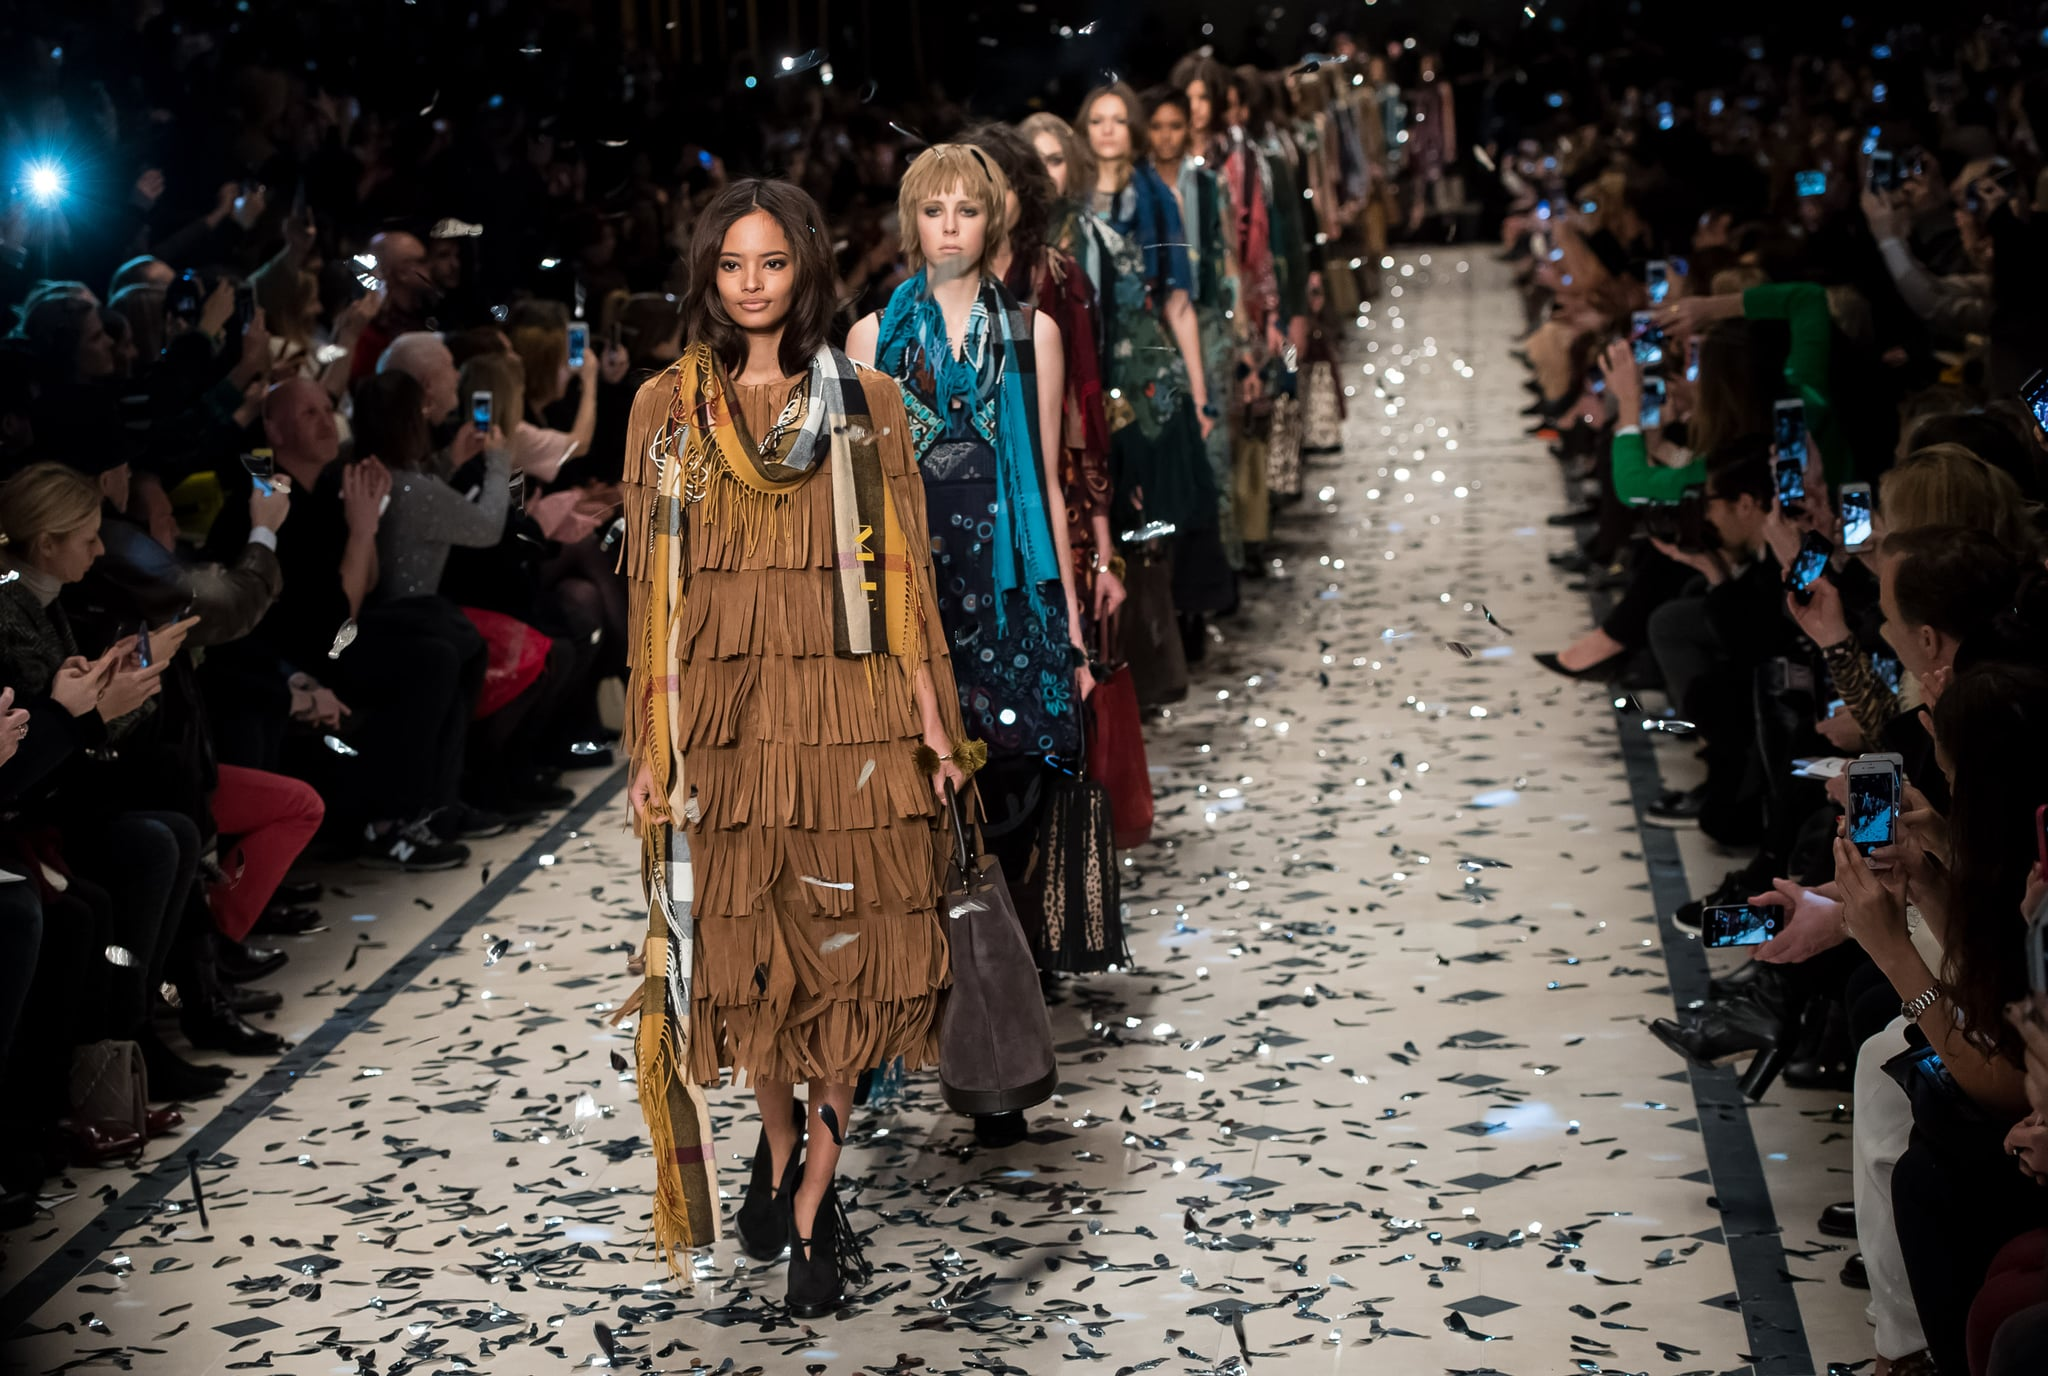 LONDON, ENGLAND - FEBRUARY 23:  A model walks the runway at the Burberry Prorsum show during London Fashion Week Fall/Winter 2015/16 at perk's Field on February 23, 2015 in London, England.  (Photo by Ian Gavan/Getty Images)